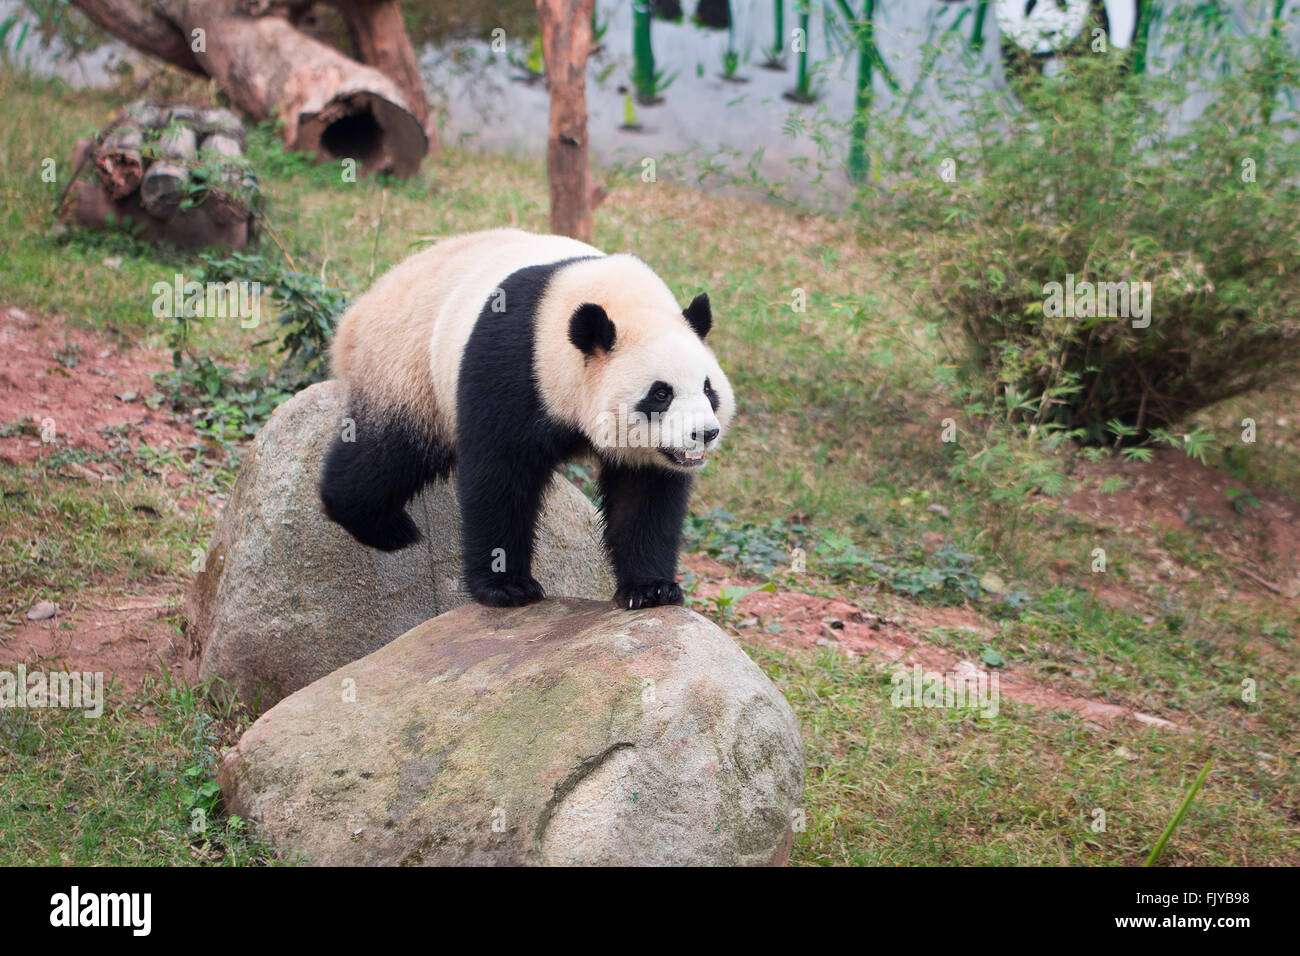 Panda in zoo - Stock Image